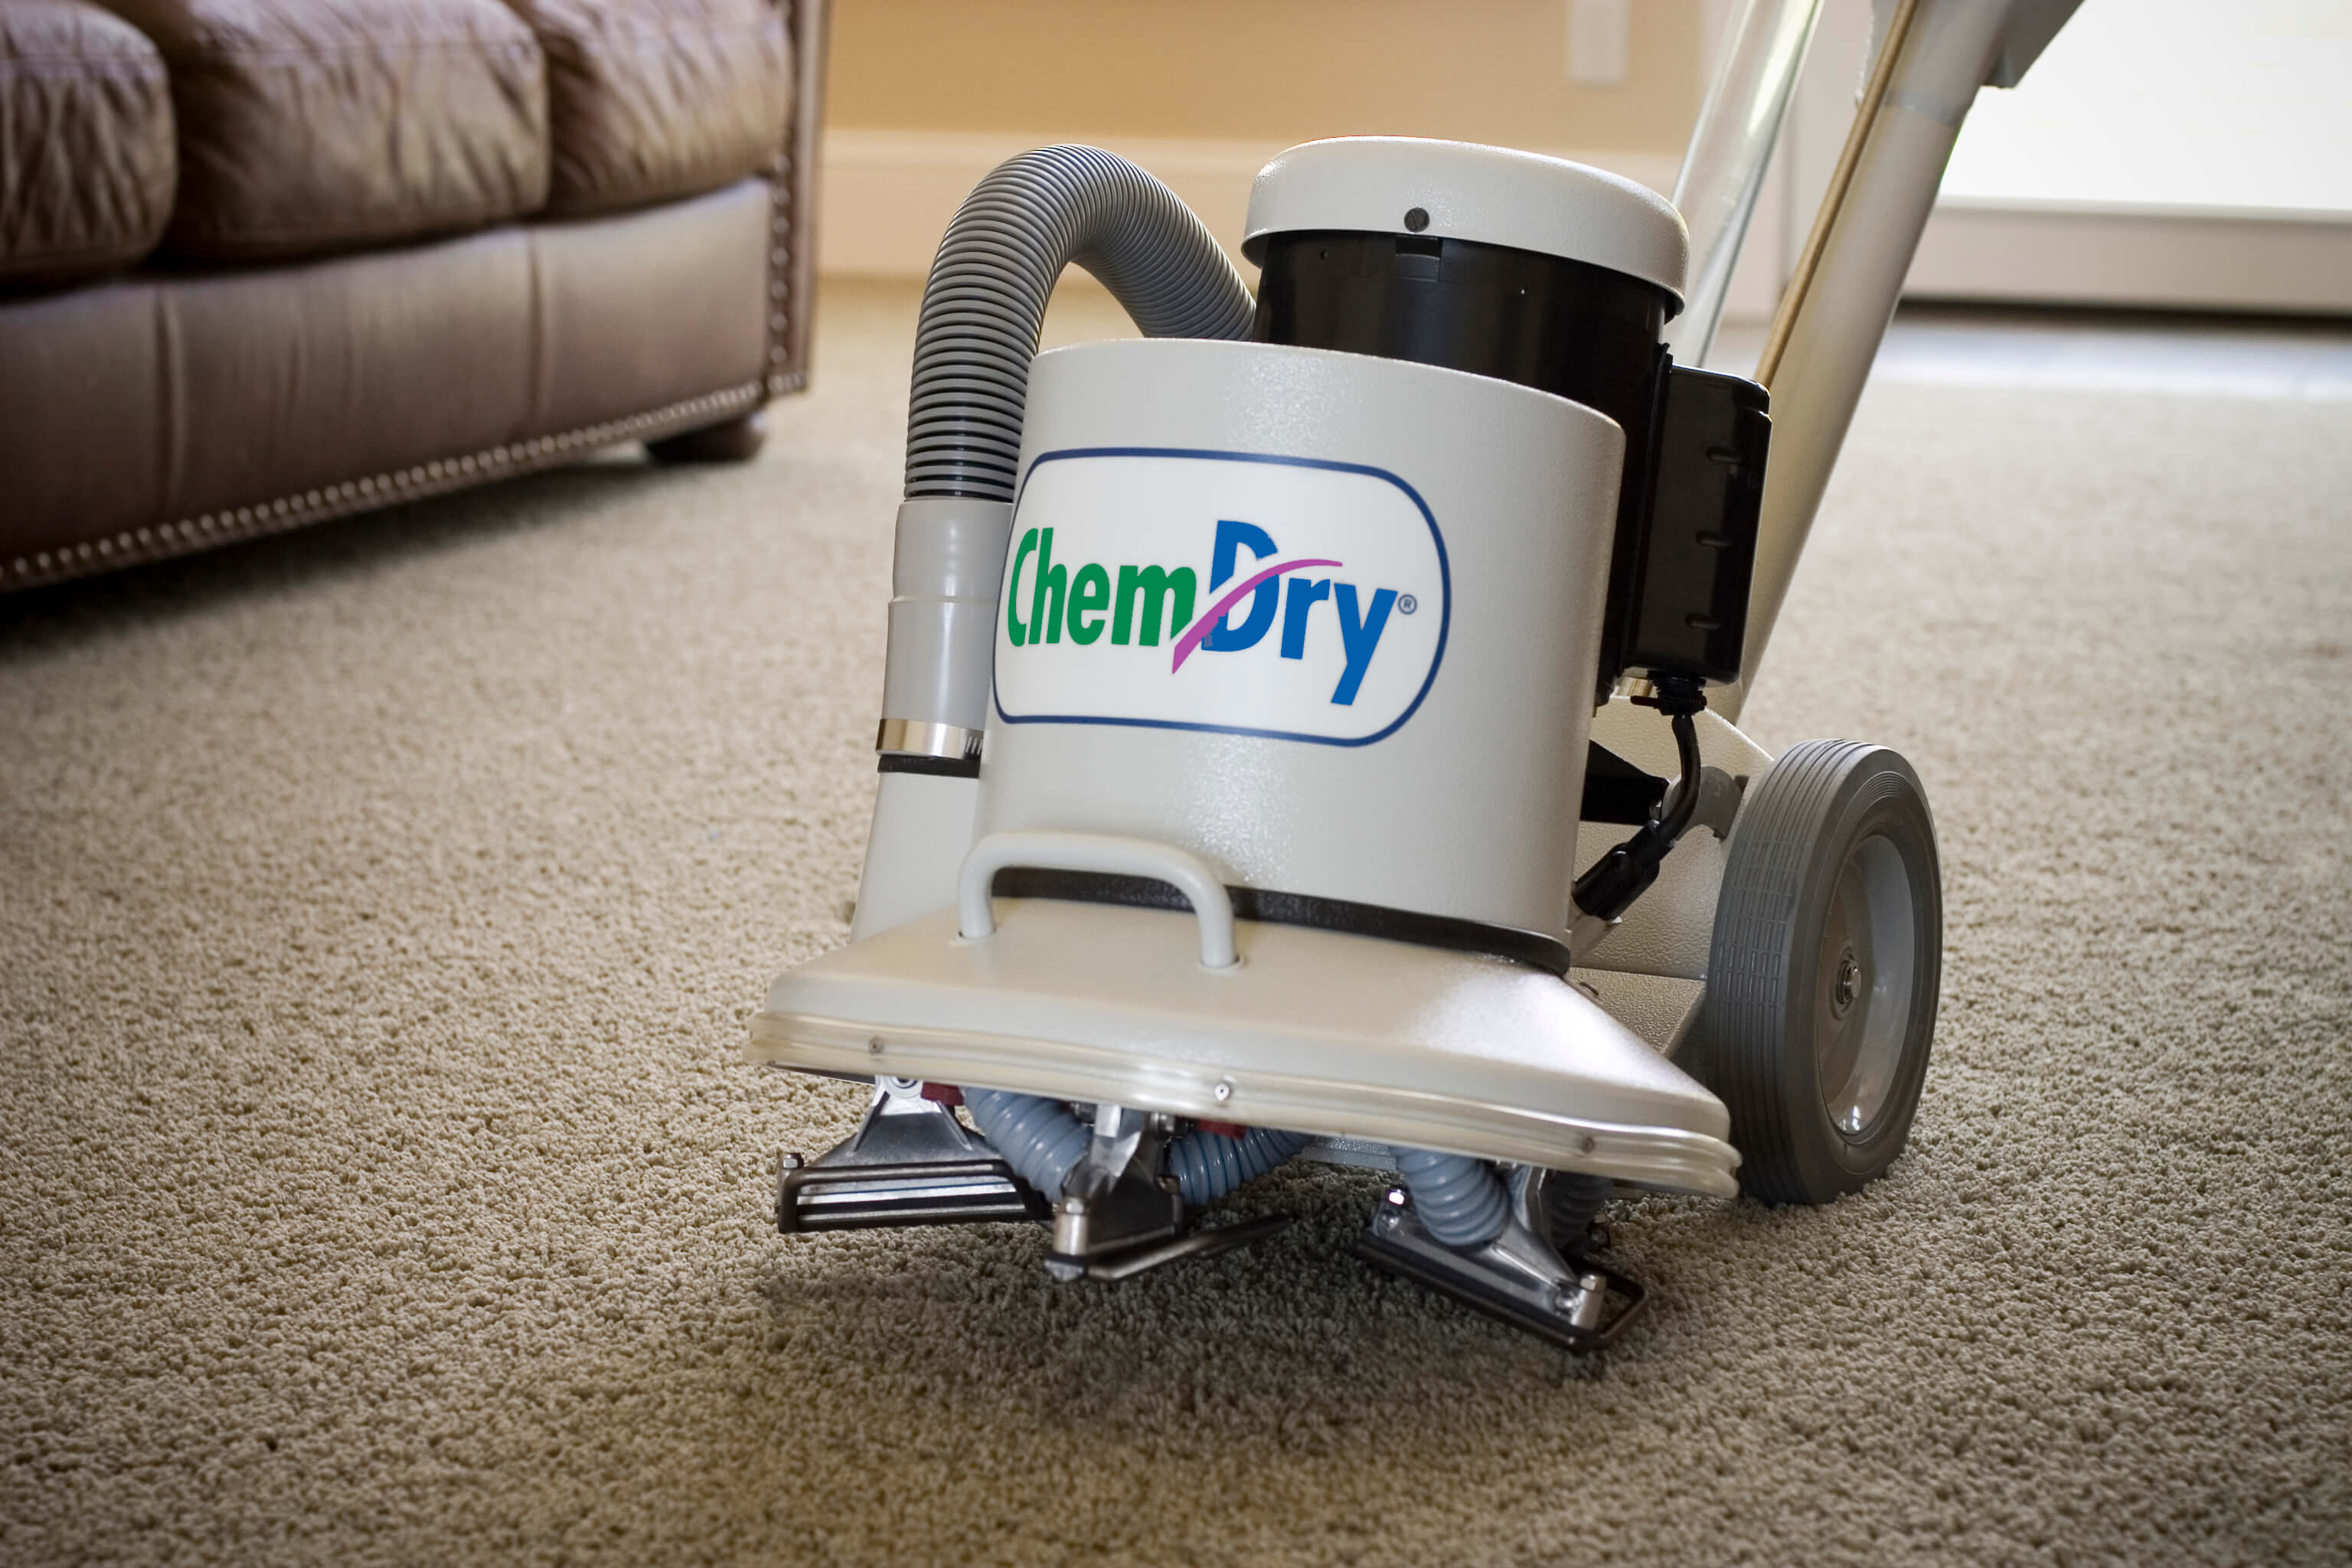 chem-dry windy city carpet cleaning